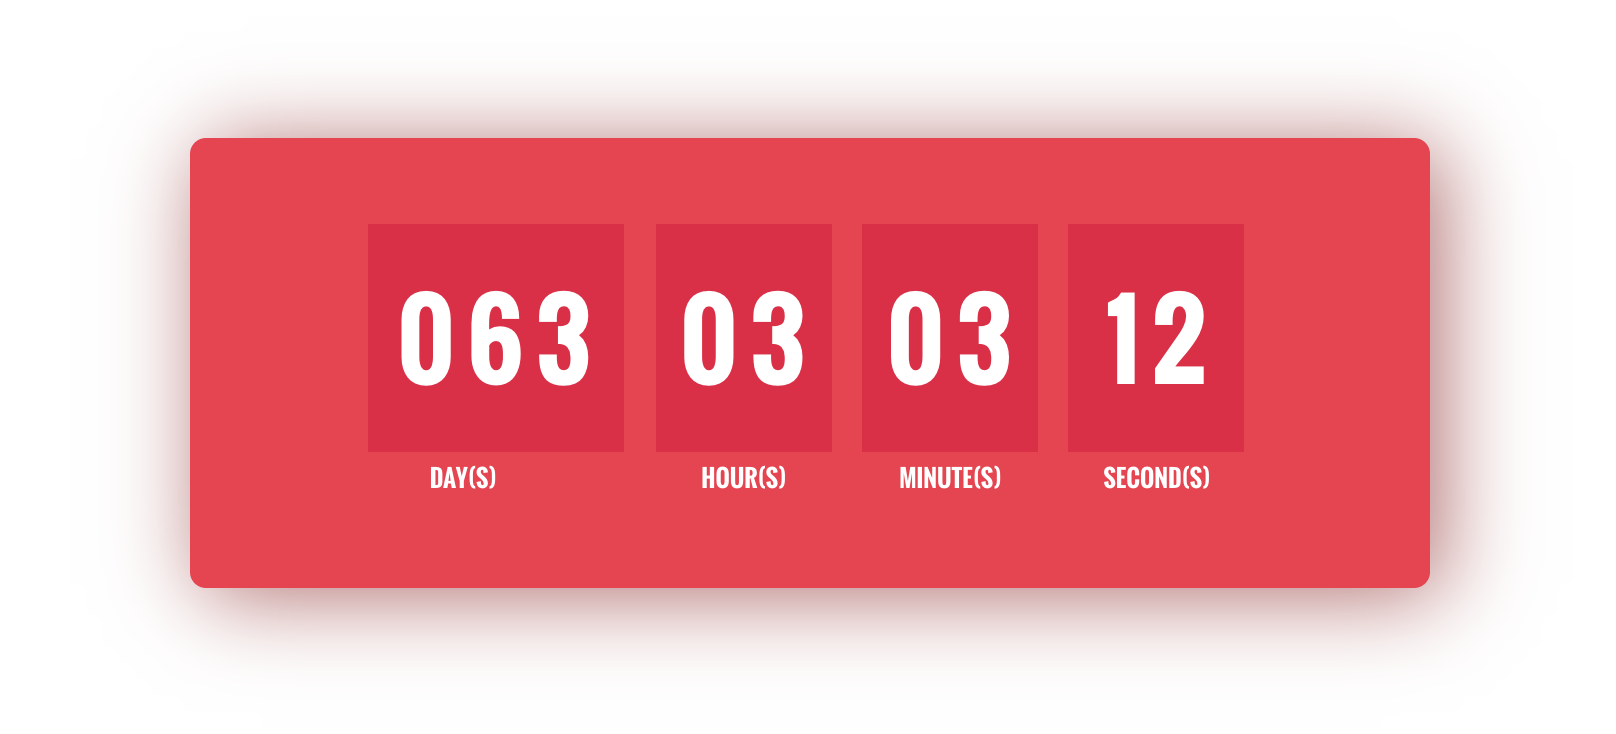 divi-countdown-bold-colorful